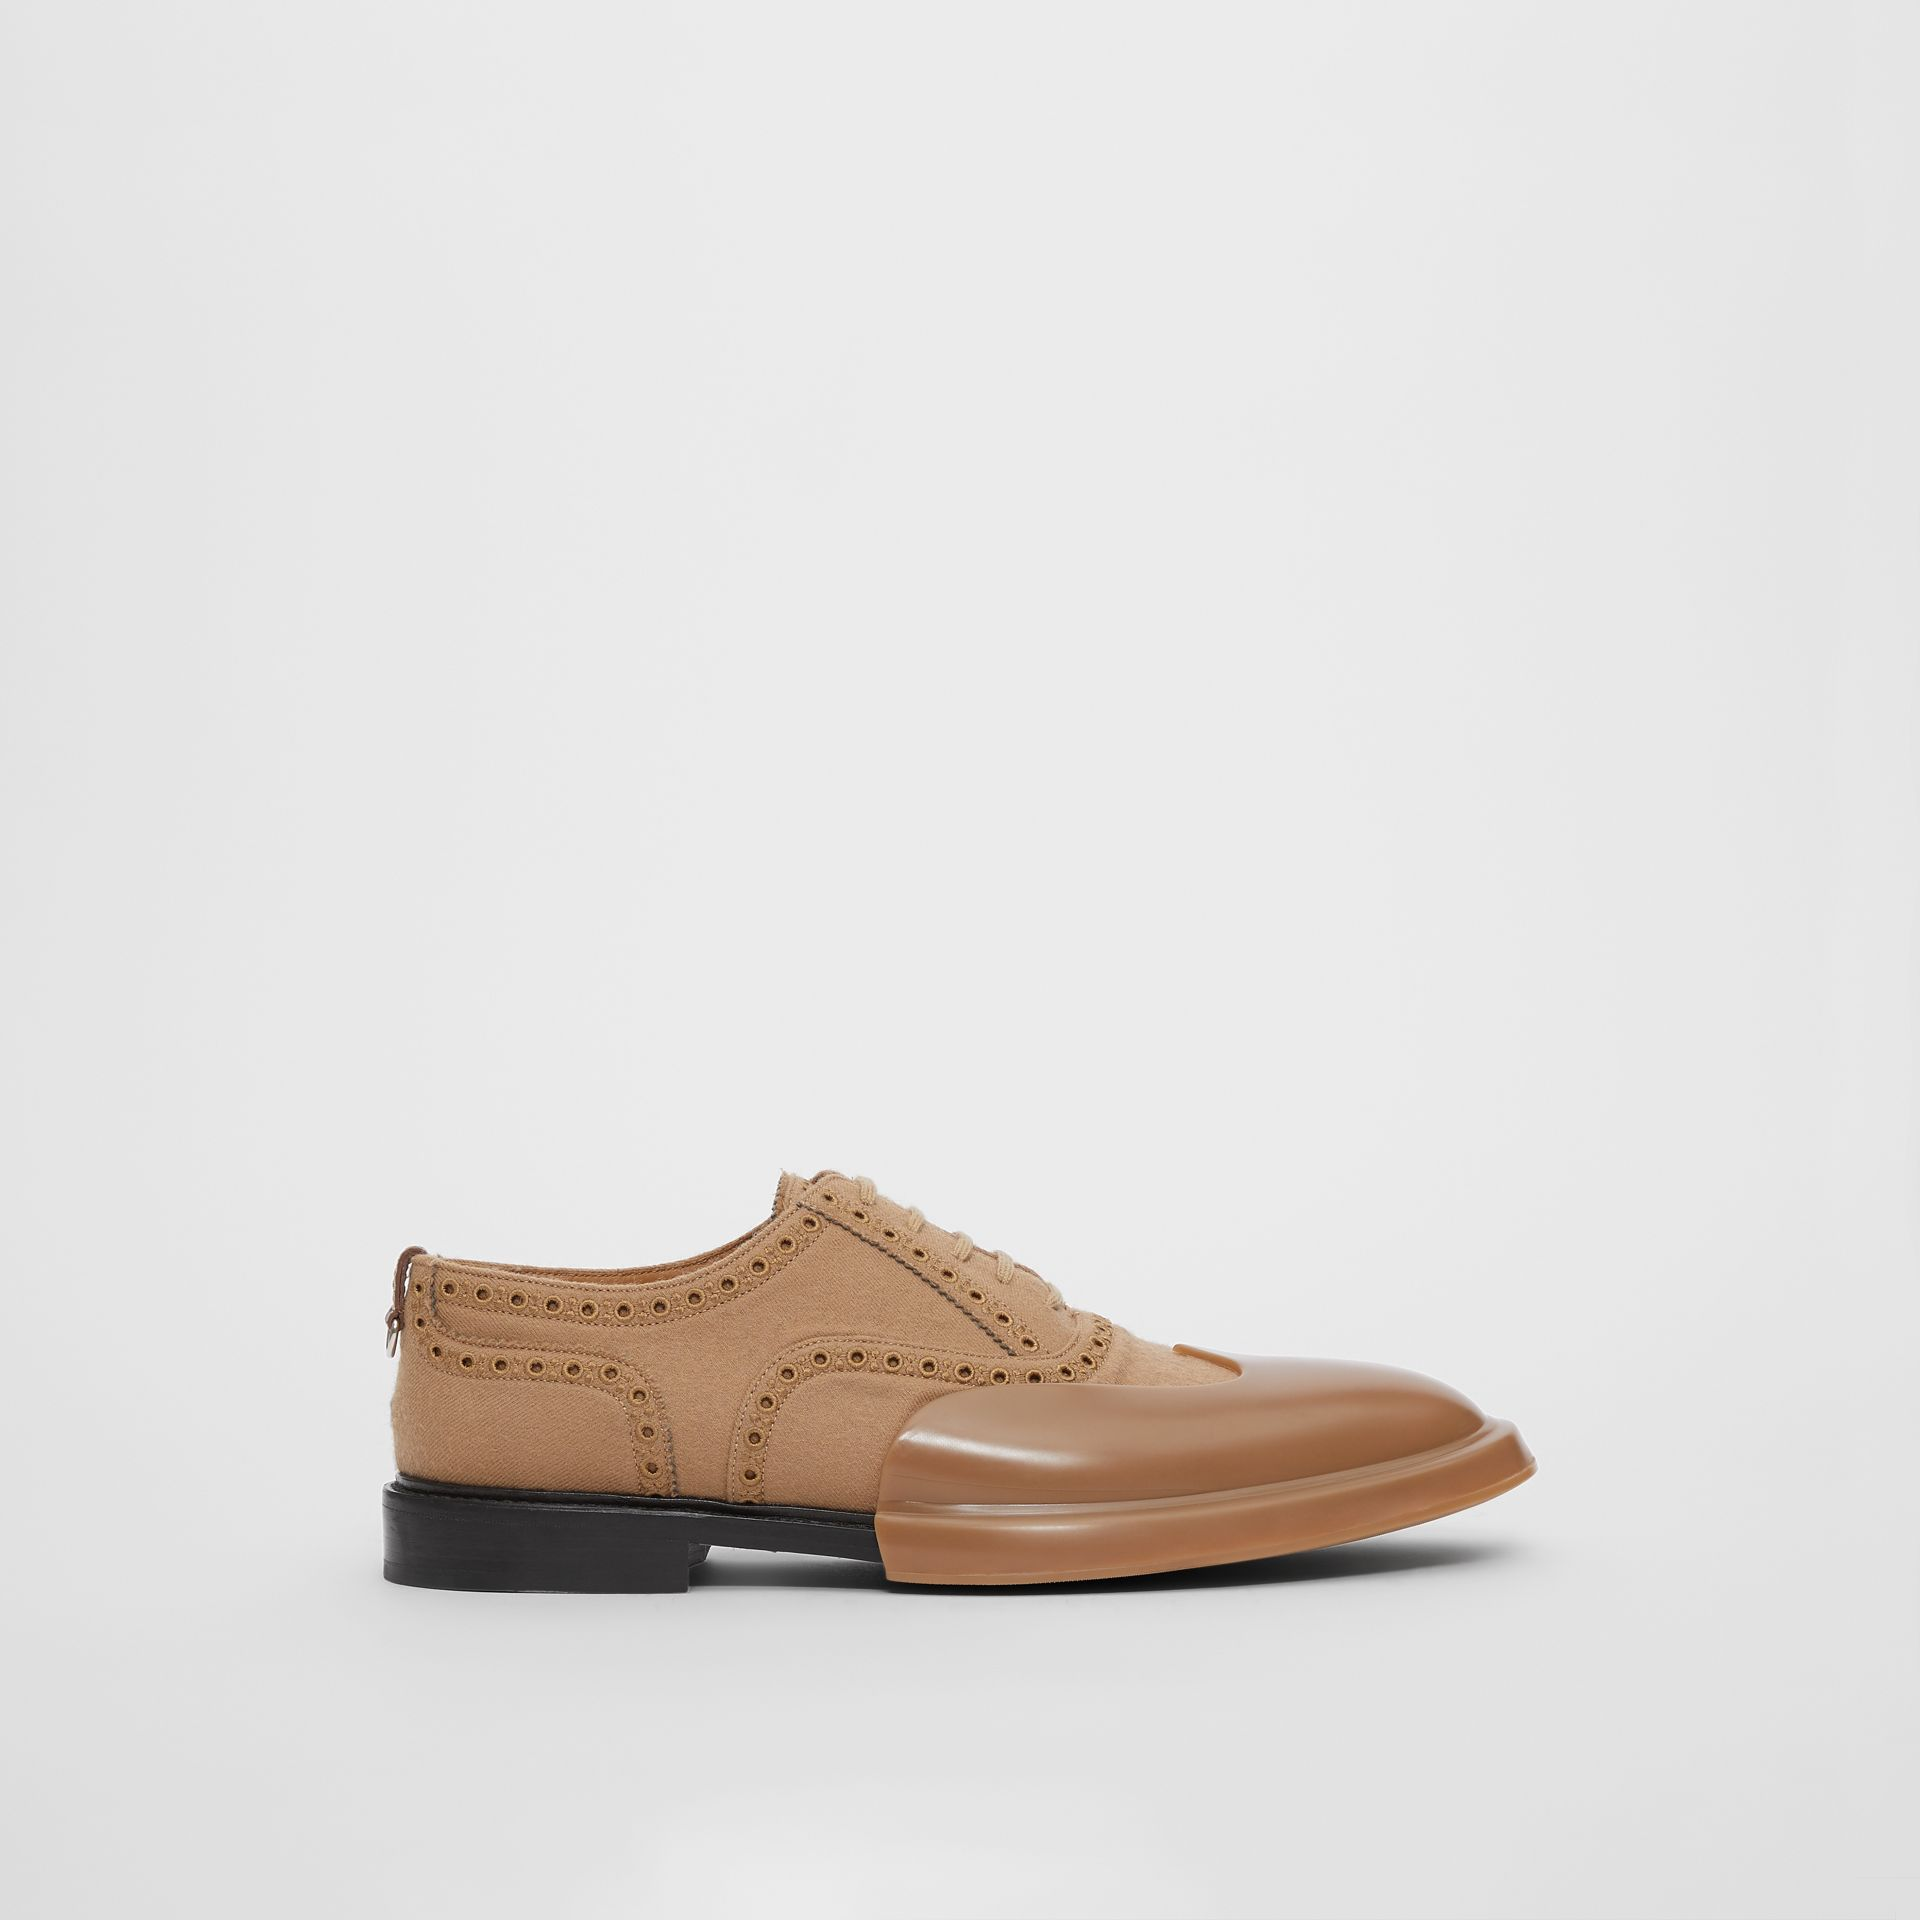 Toe Cap Detail Wool Oxford Brogues in Warm Camel - Men | Burberry - gallery image 5